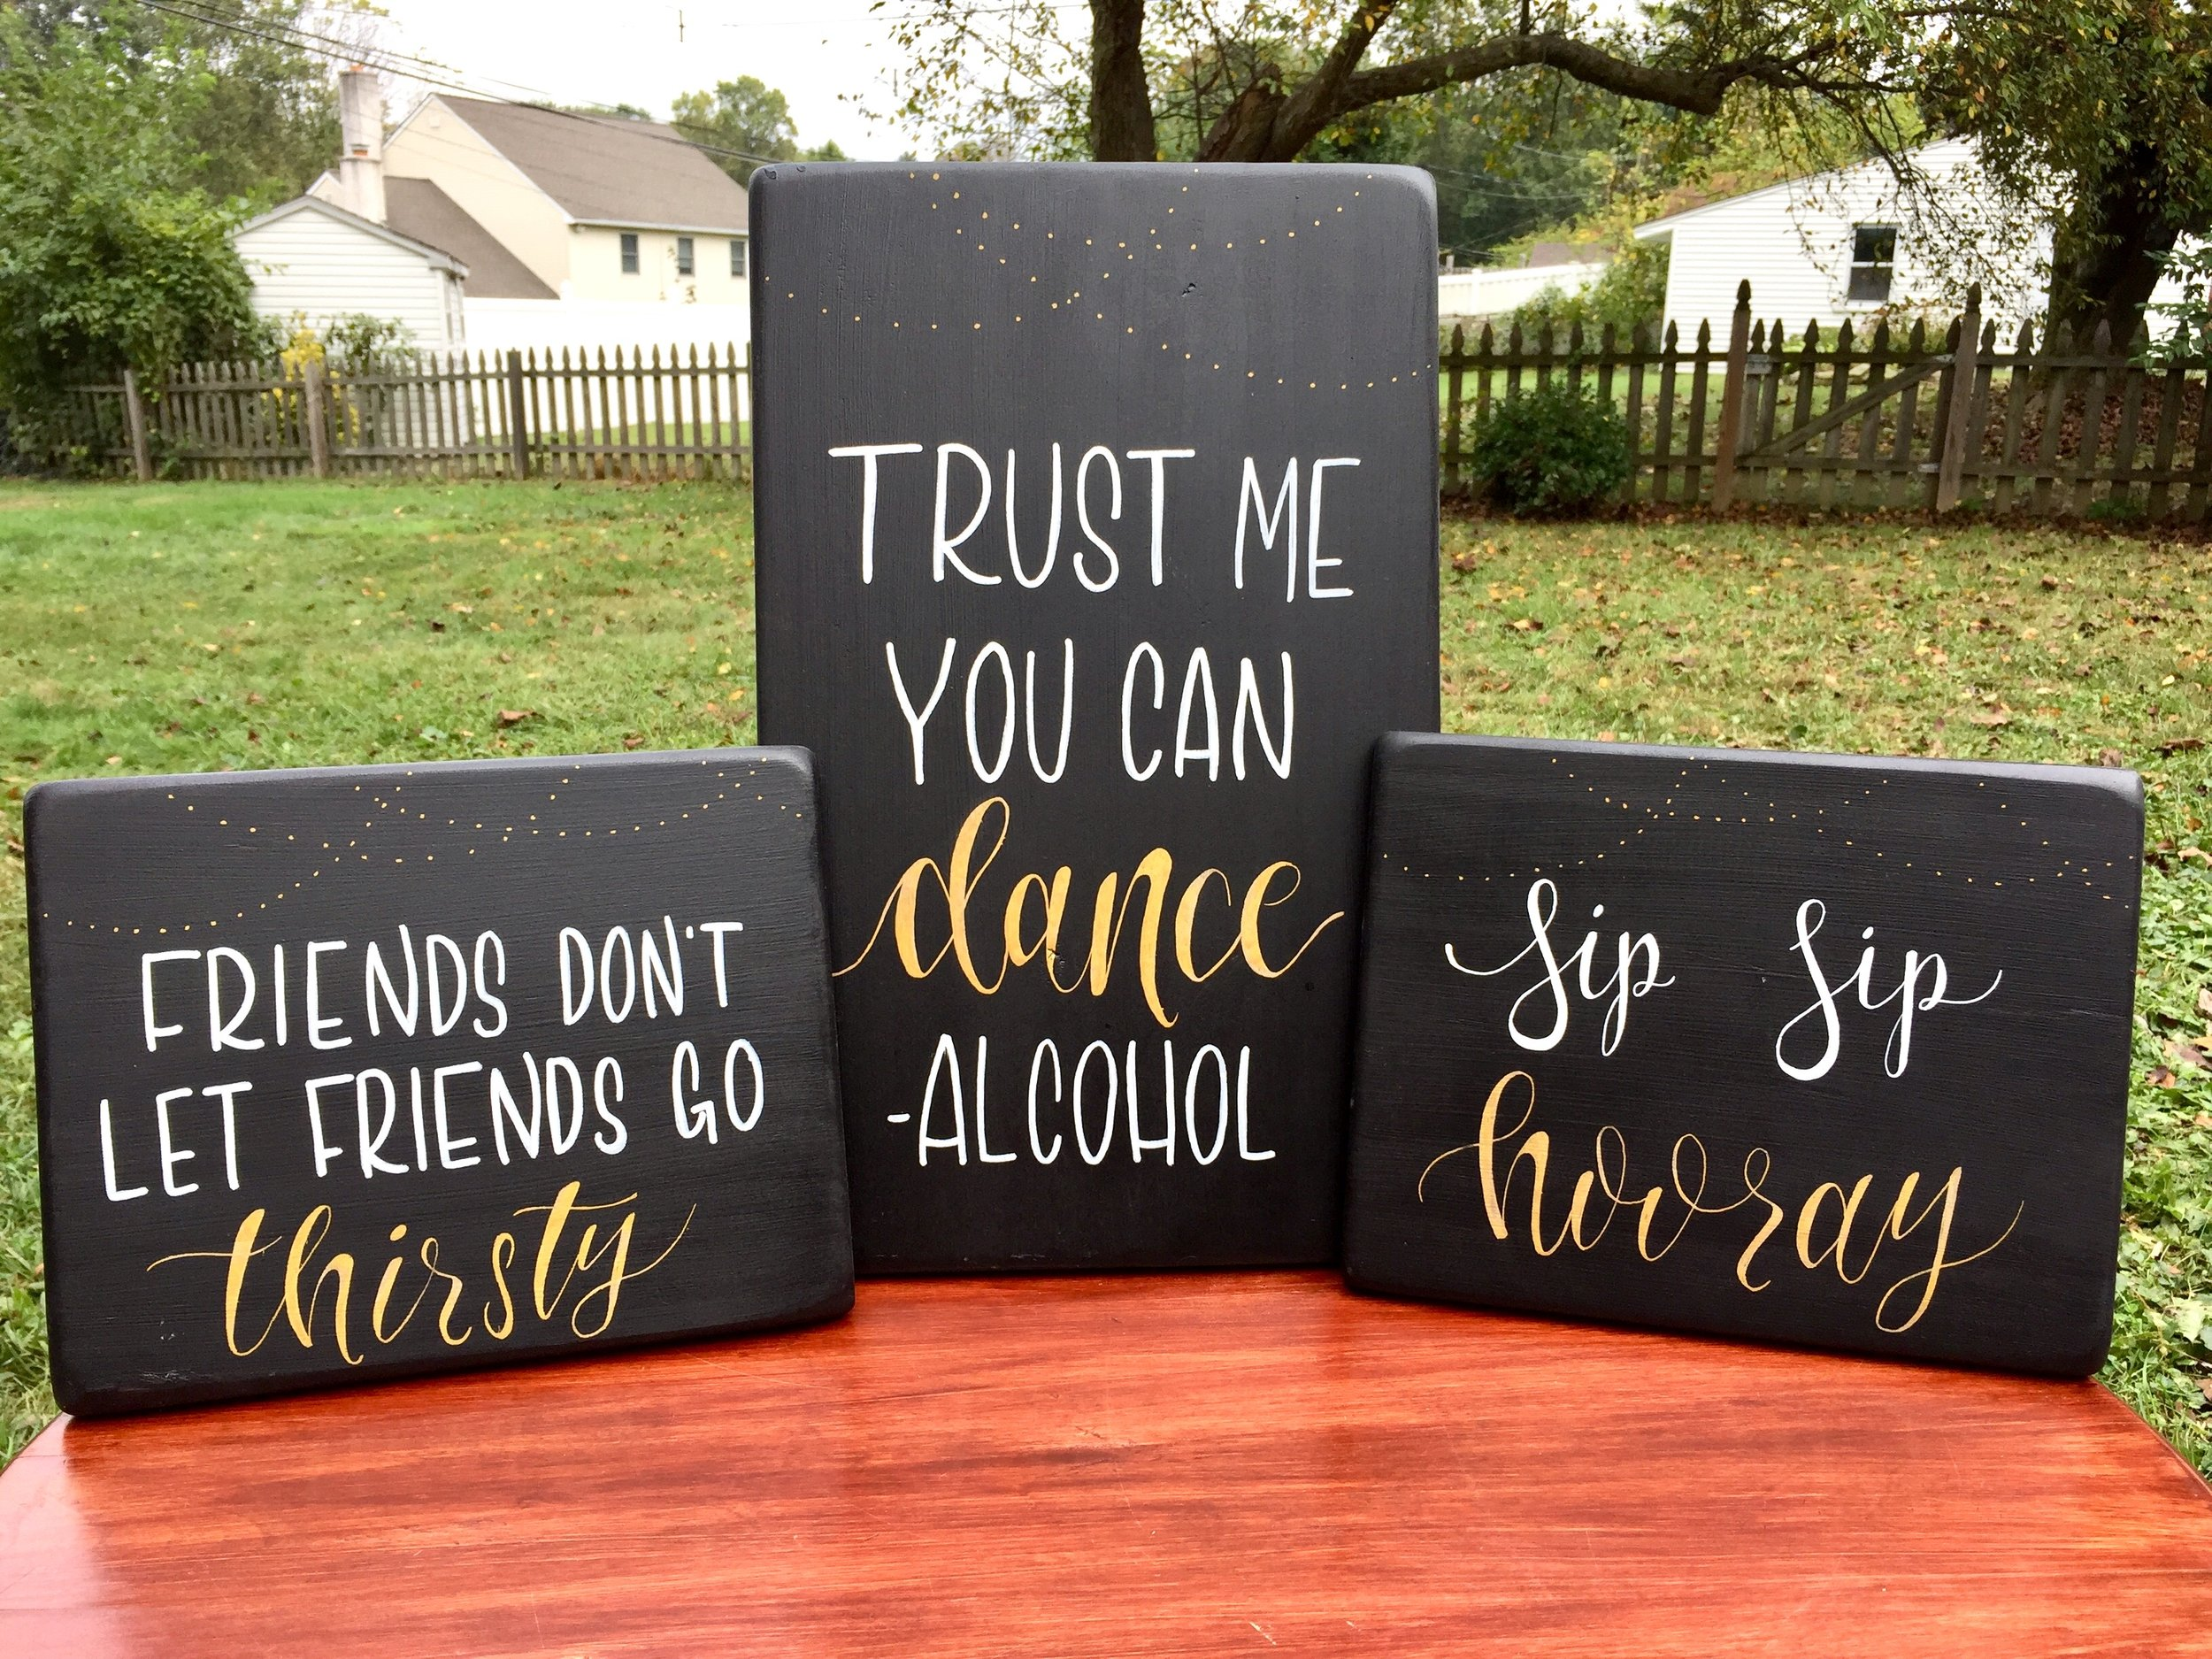 Get Creative! - Have an event coming up? Wedding, baby shower, graduation? Seventeenth Street Designs can work with you to create the perfect custom sign!All signs are painted by hand, no stencils or vinyl is ever used. This makes every sign truly unique!